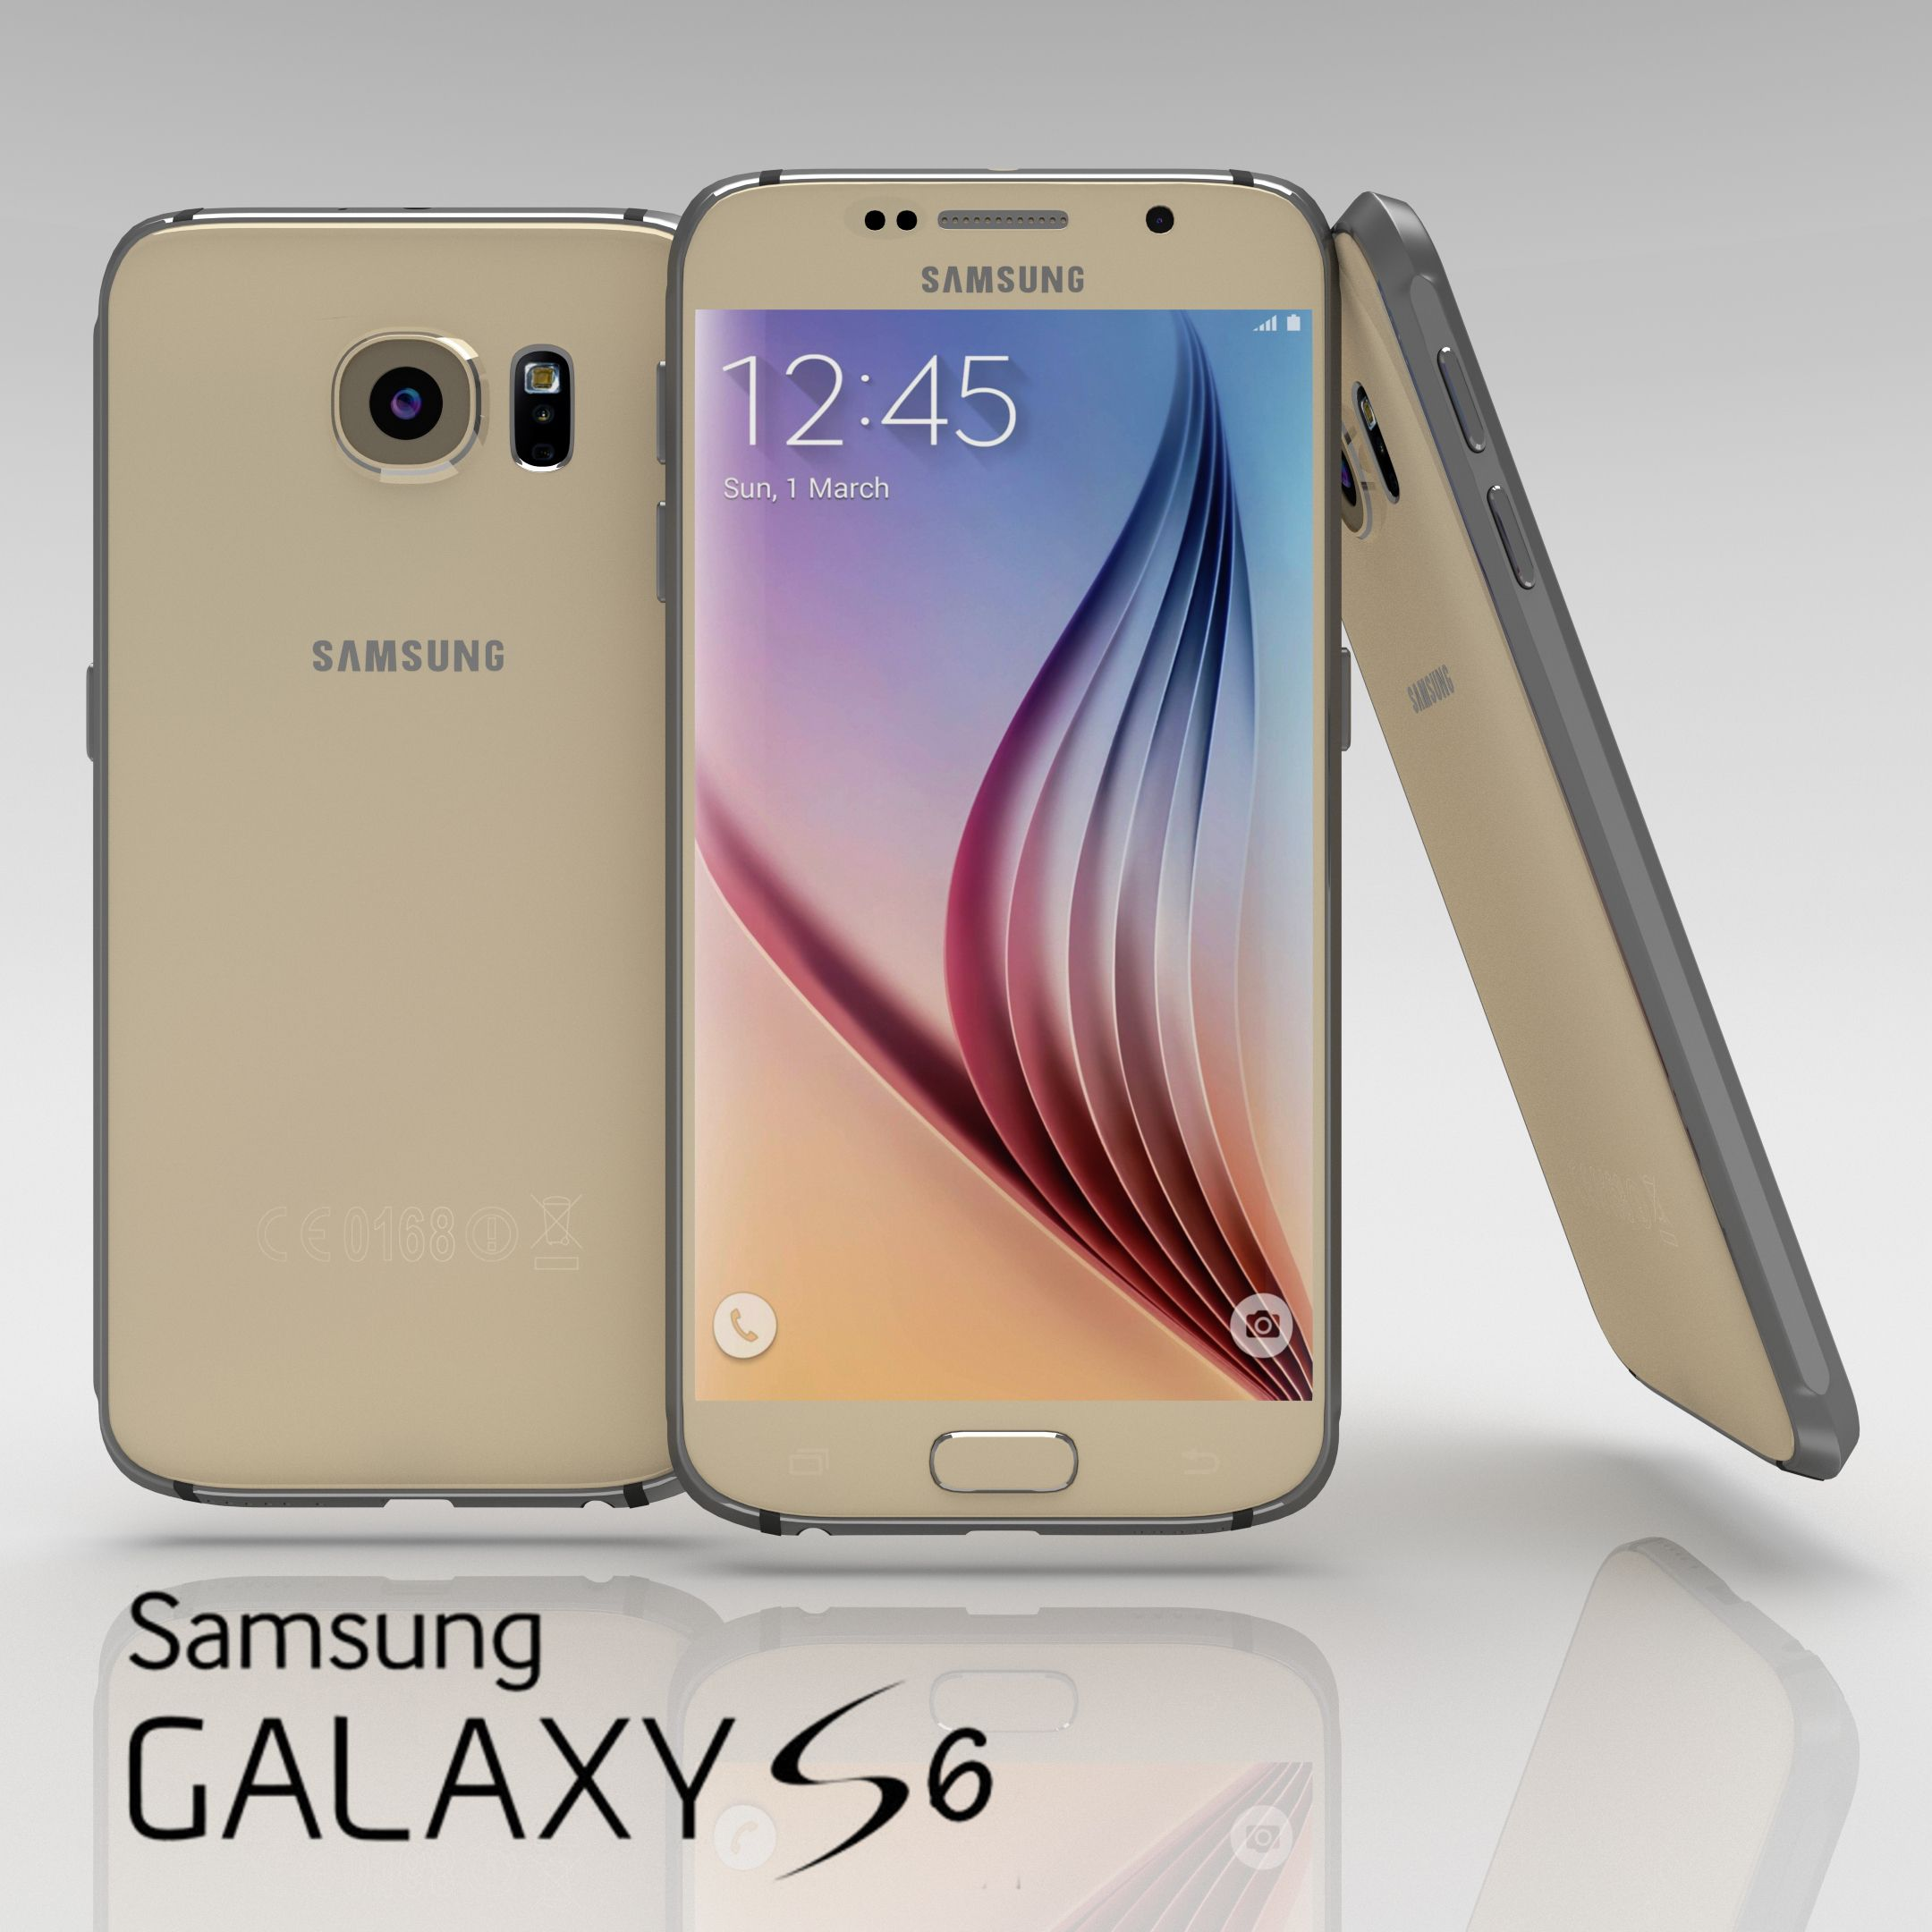 Samsung Galaxy S6 And S6 Edge All Color Pack Samsung Galaxy S6 Samsung Galaxy Prepaid Phones